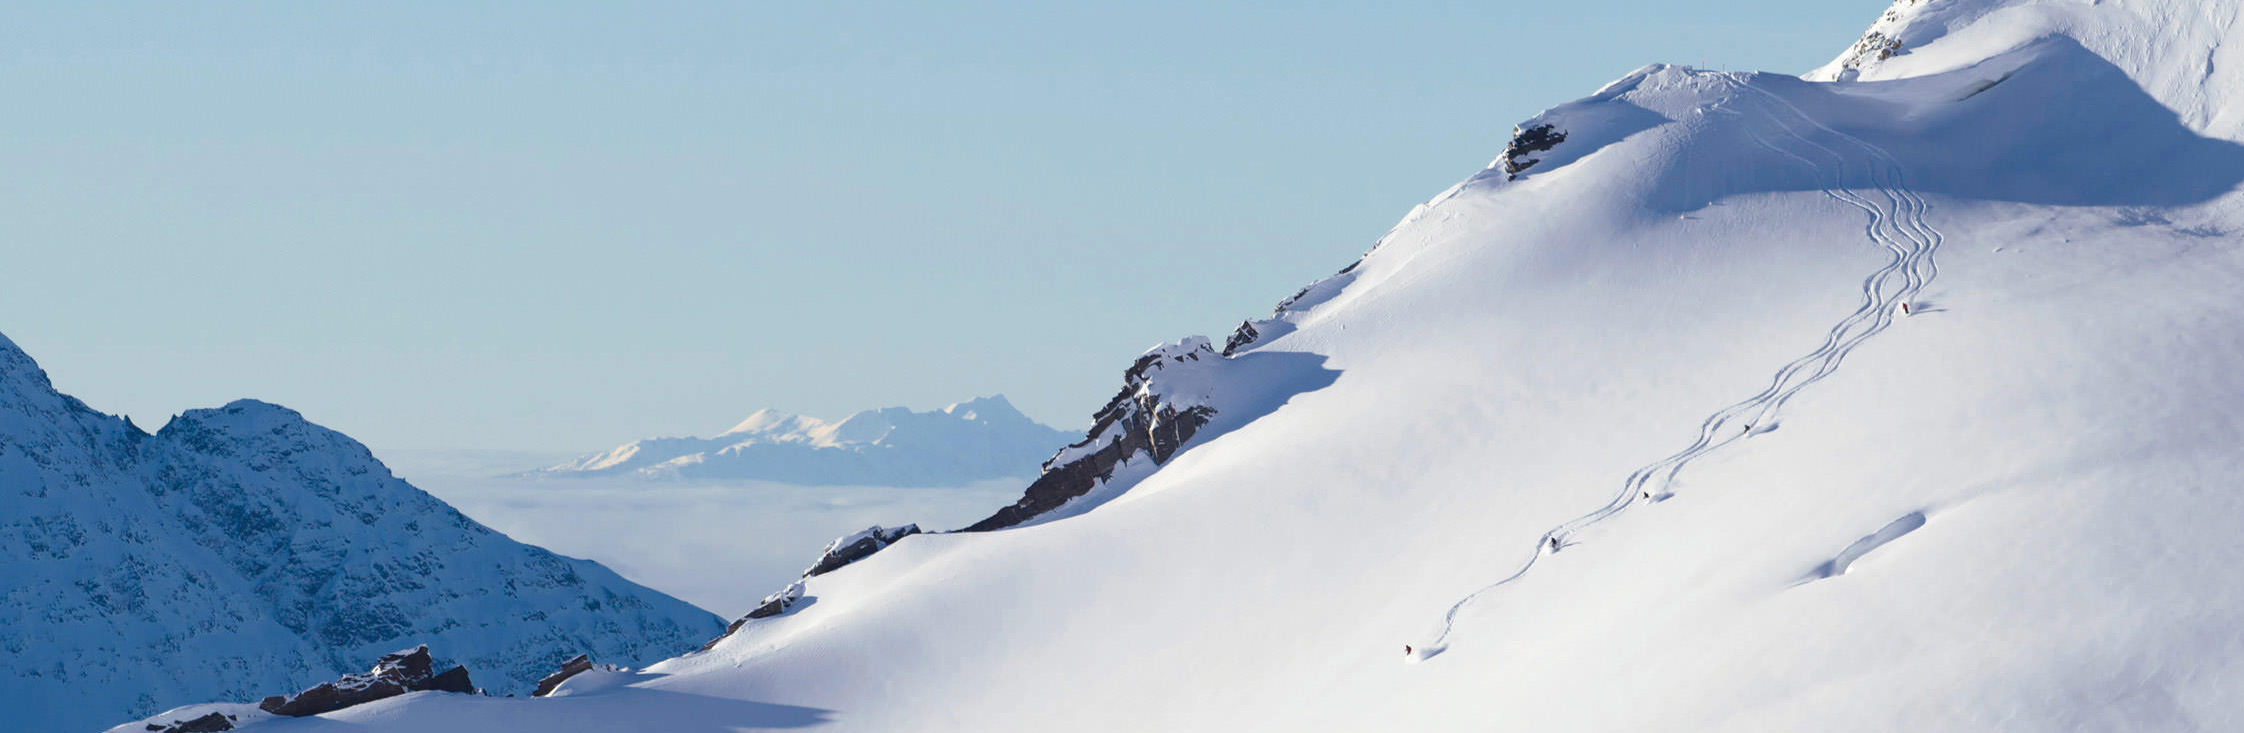 heliskiing_small_mountains-view